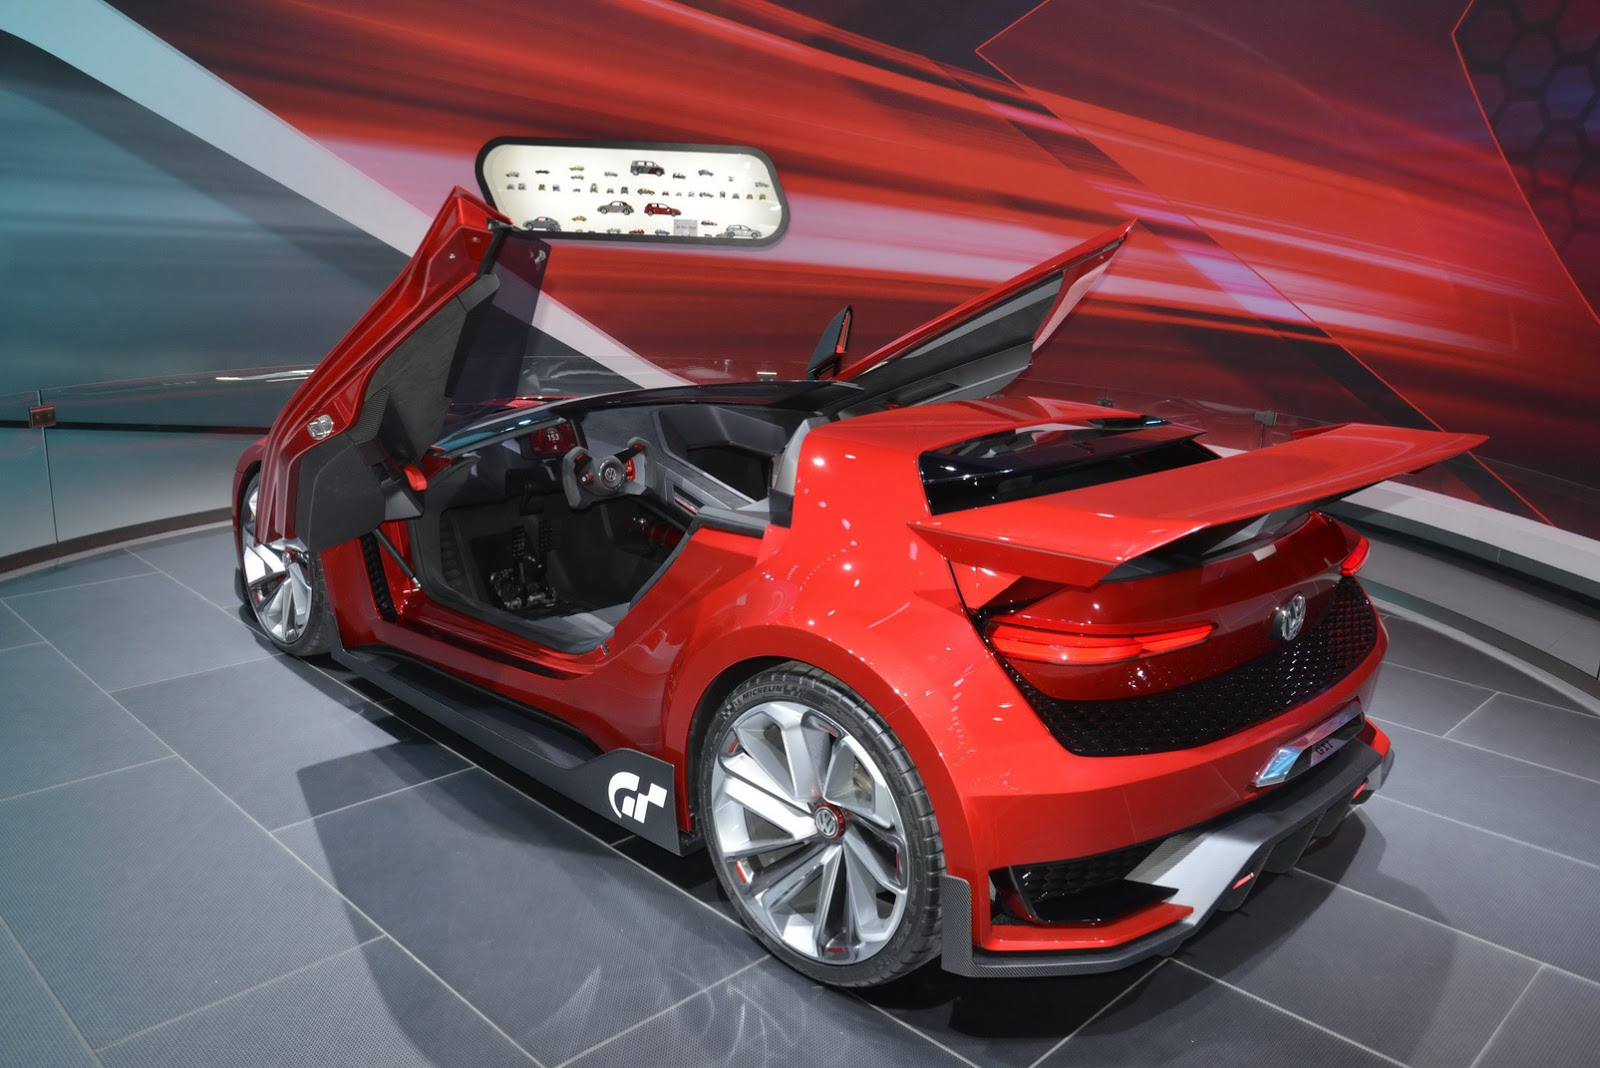 Cadillac Ats Vs The World VW's GTI Roadster Concept Would Make for An Awesome Scirocco